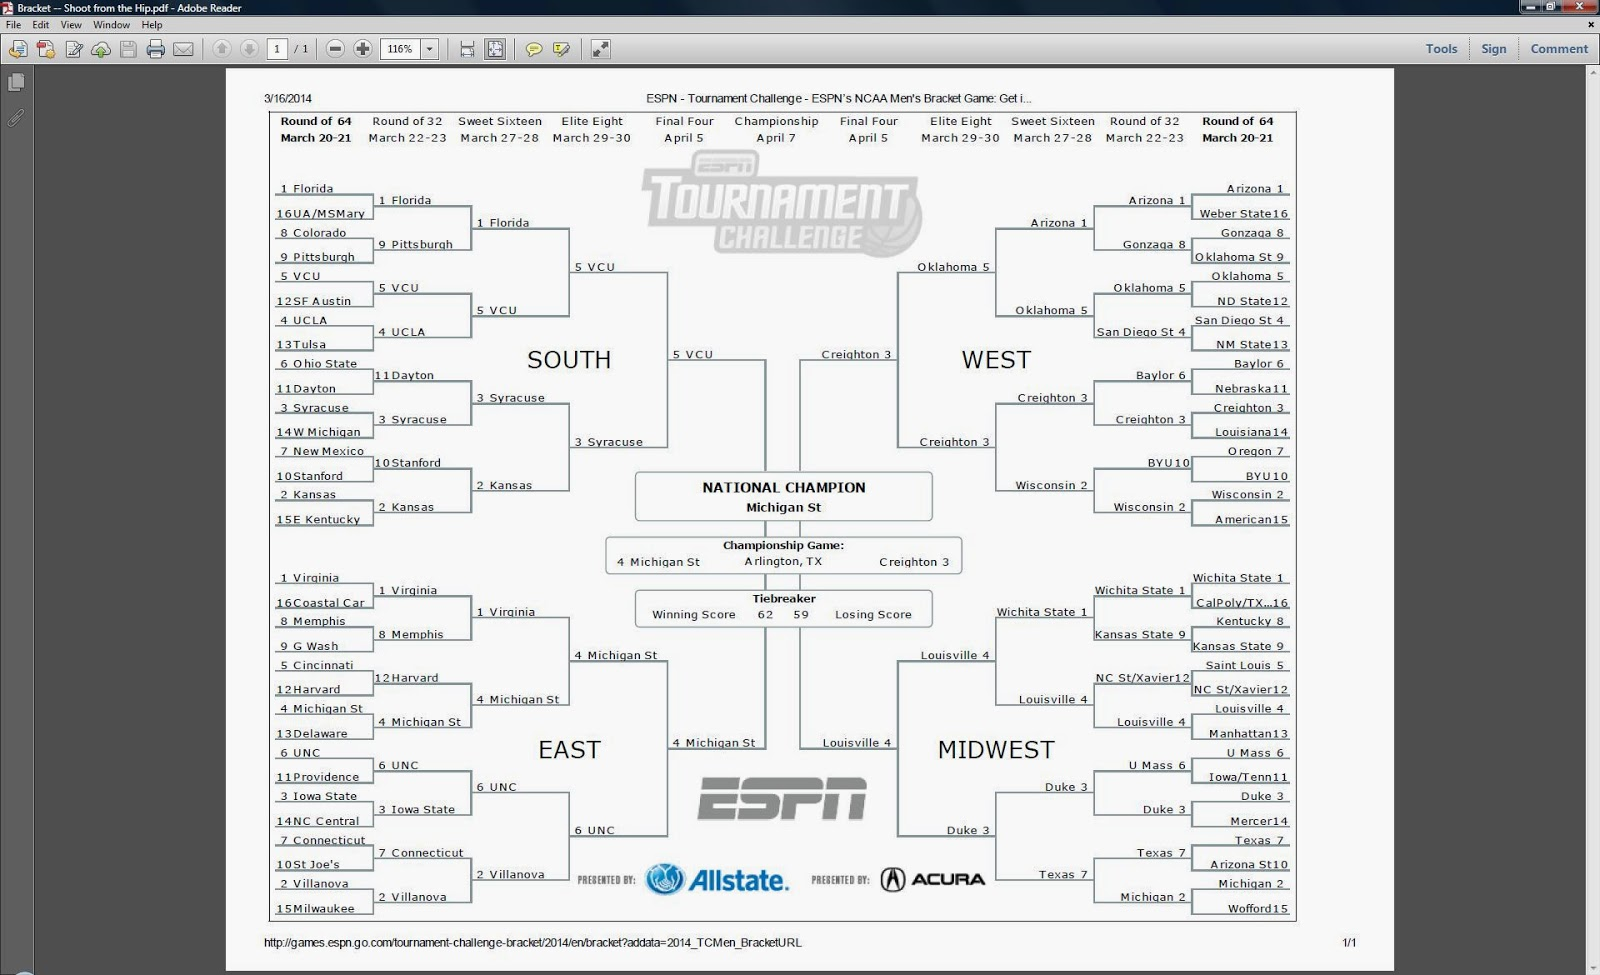 Now That The Media Markets Are Flooded With Braketology I Have Learned This Is Probably Not A Very Smart Bracket Syracuse Reeling And Limping